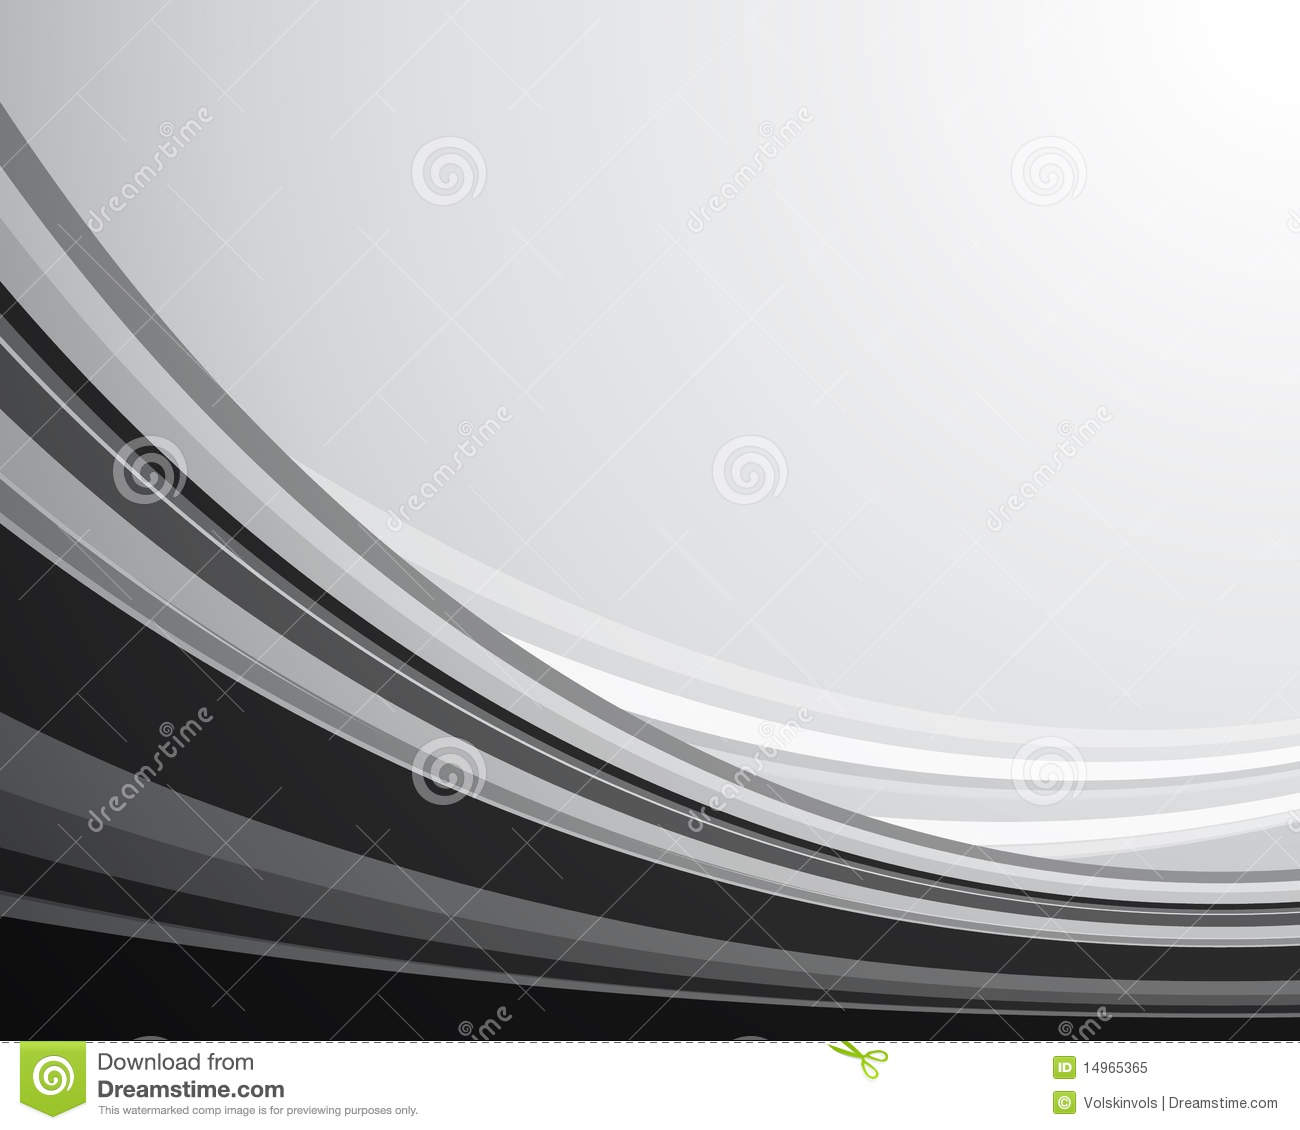 Background image grayscale - Grayscale Background Royalty Free Stock Photo